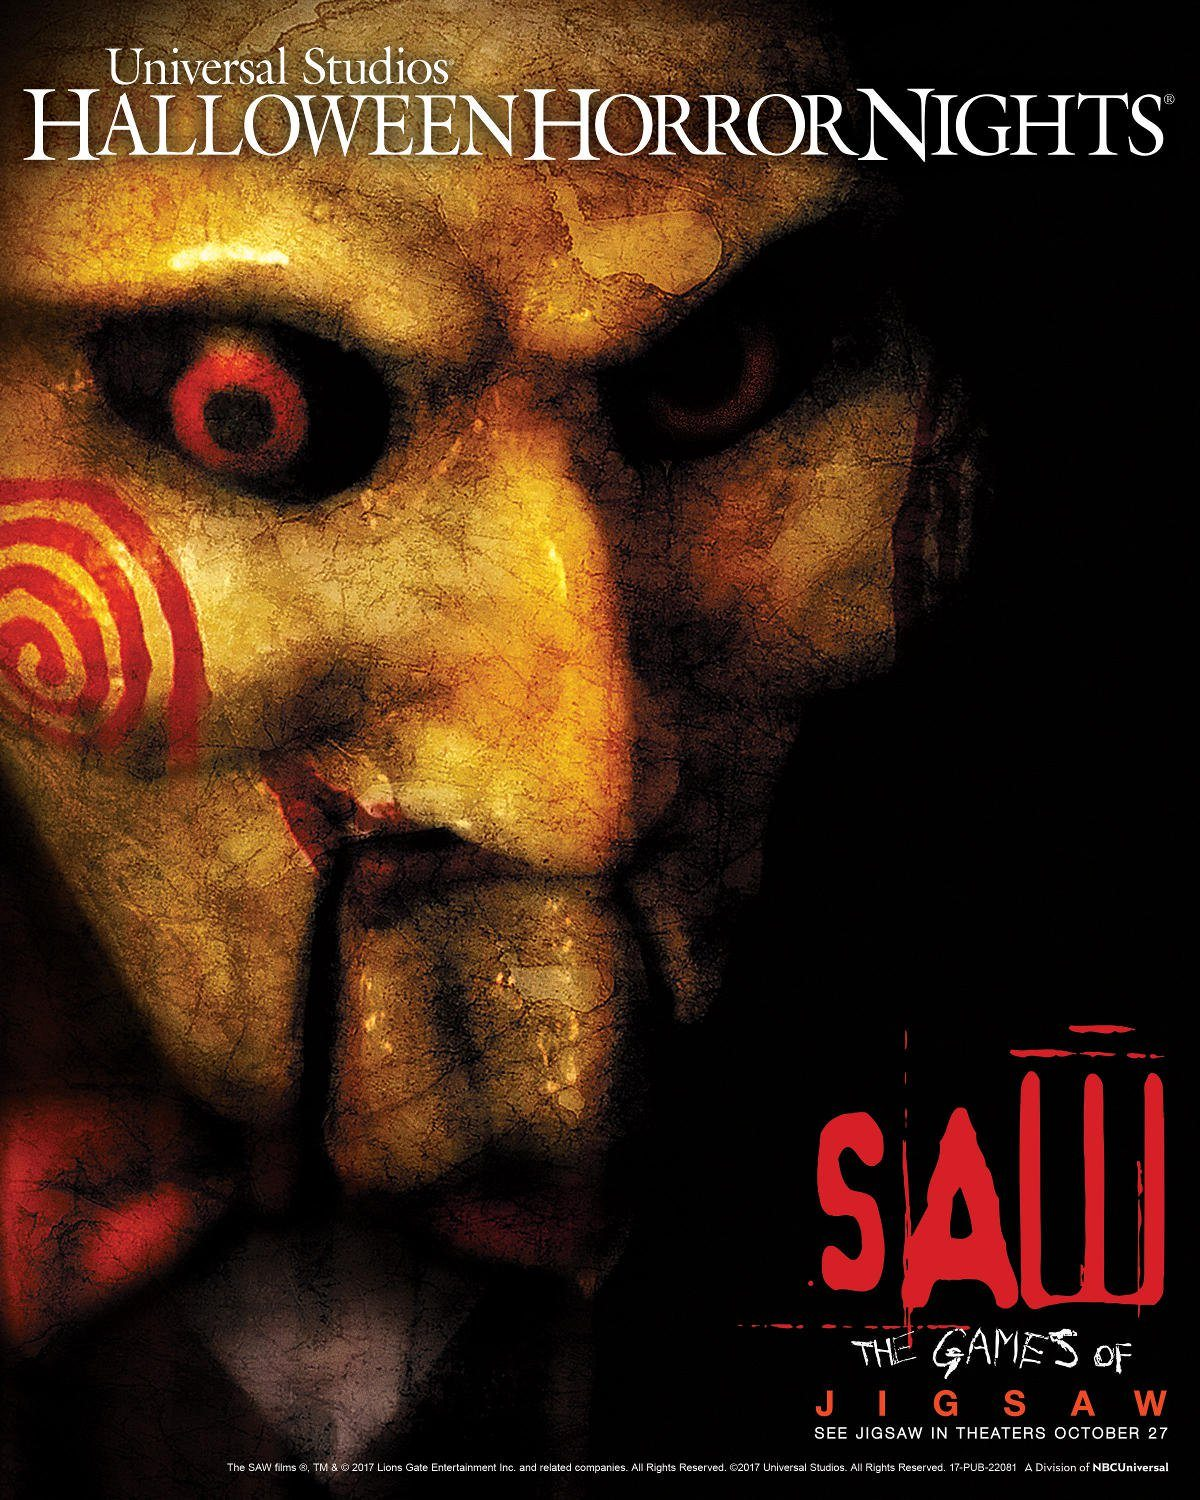 saw' is coming to halloween horror nights 2017!